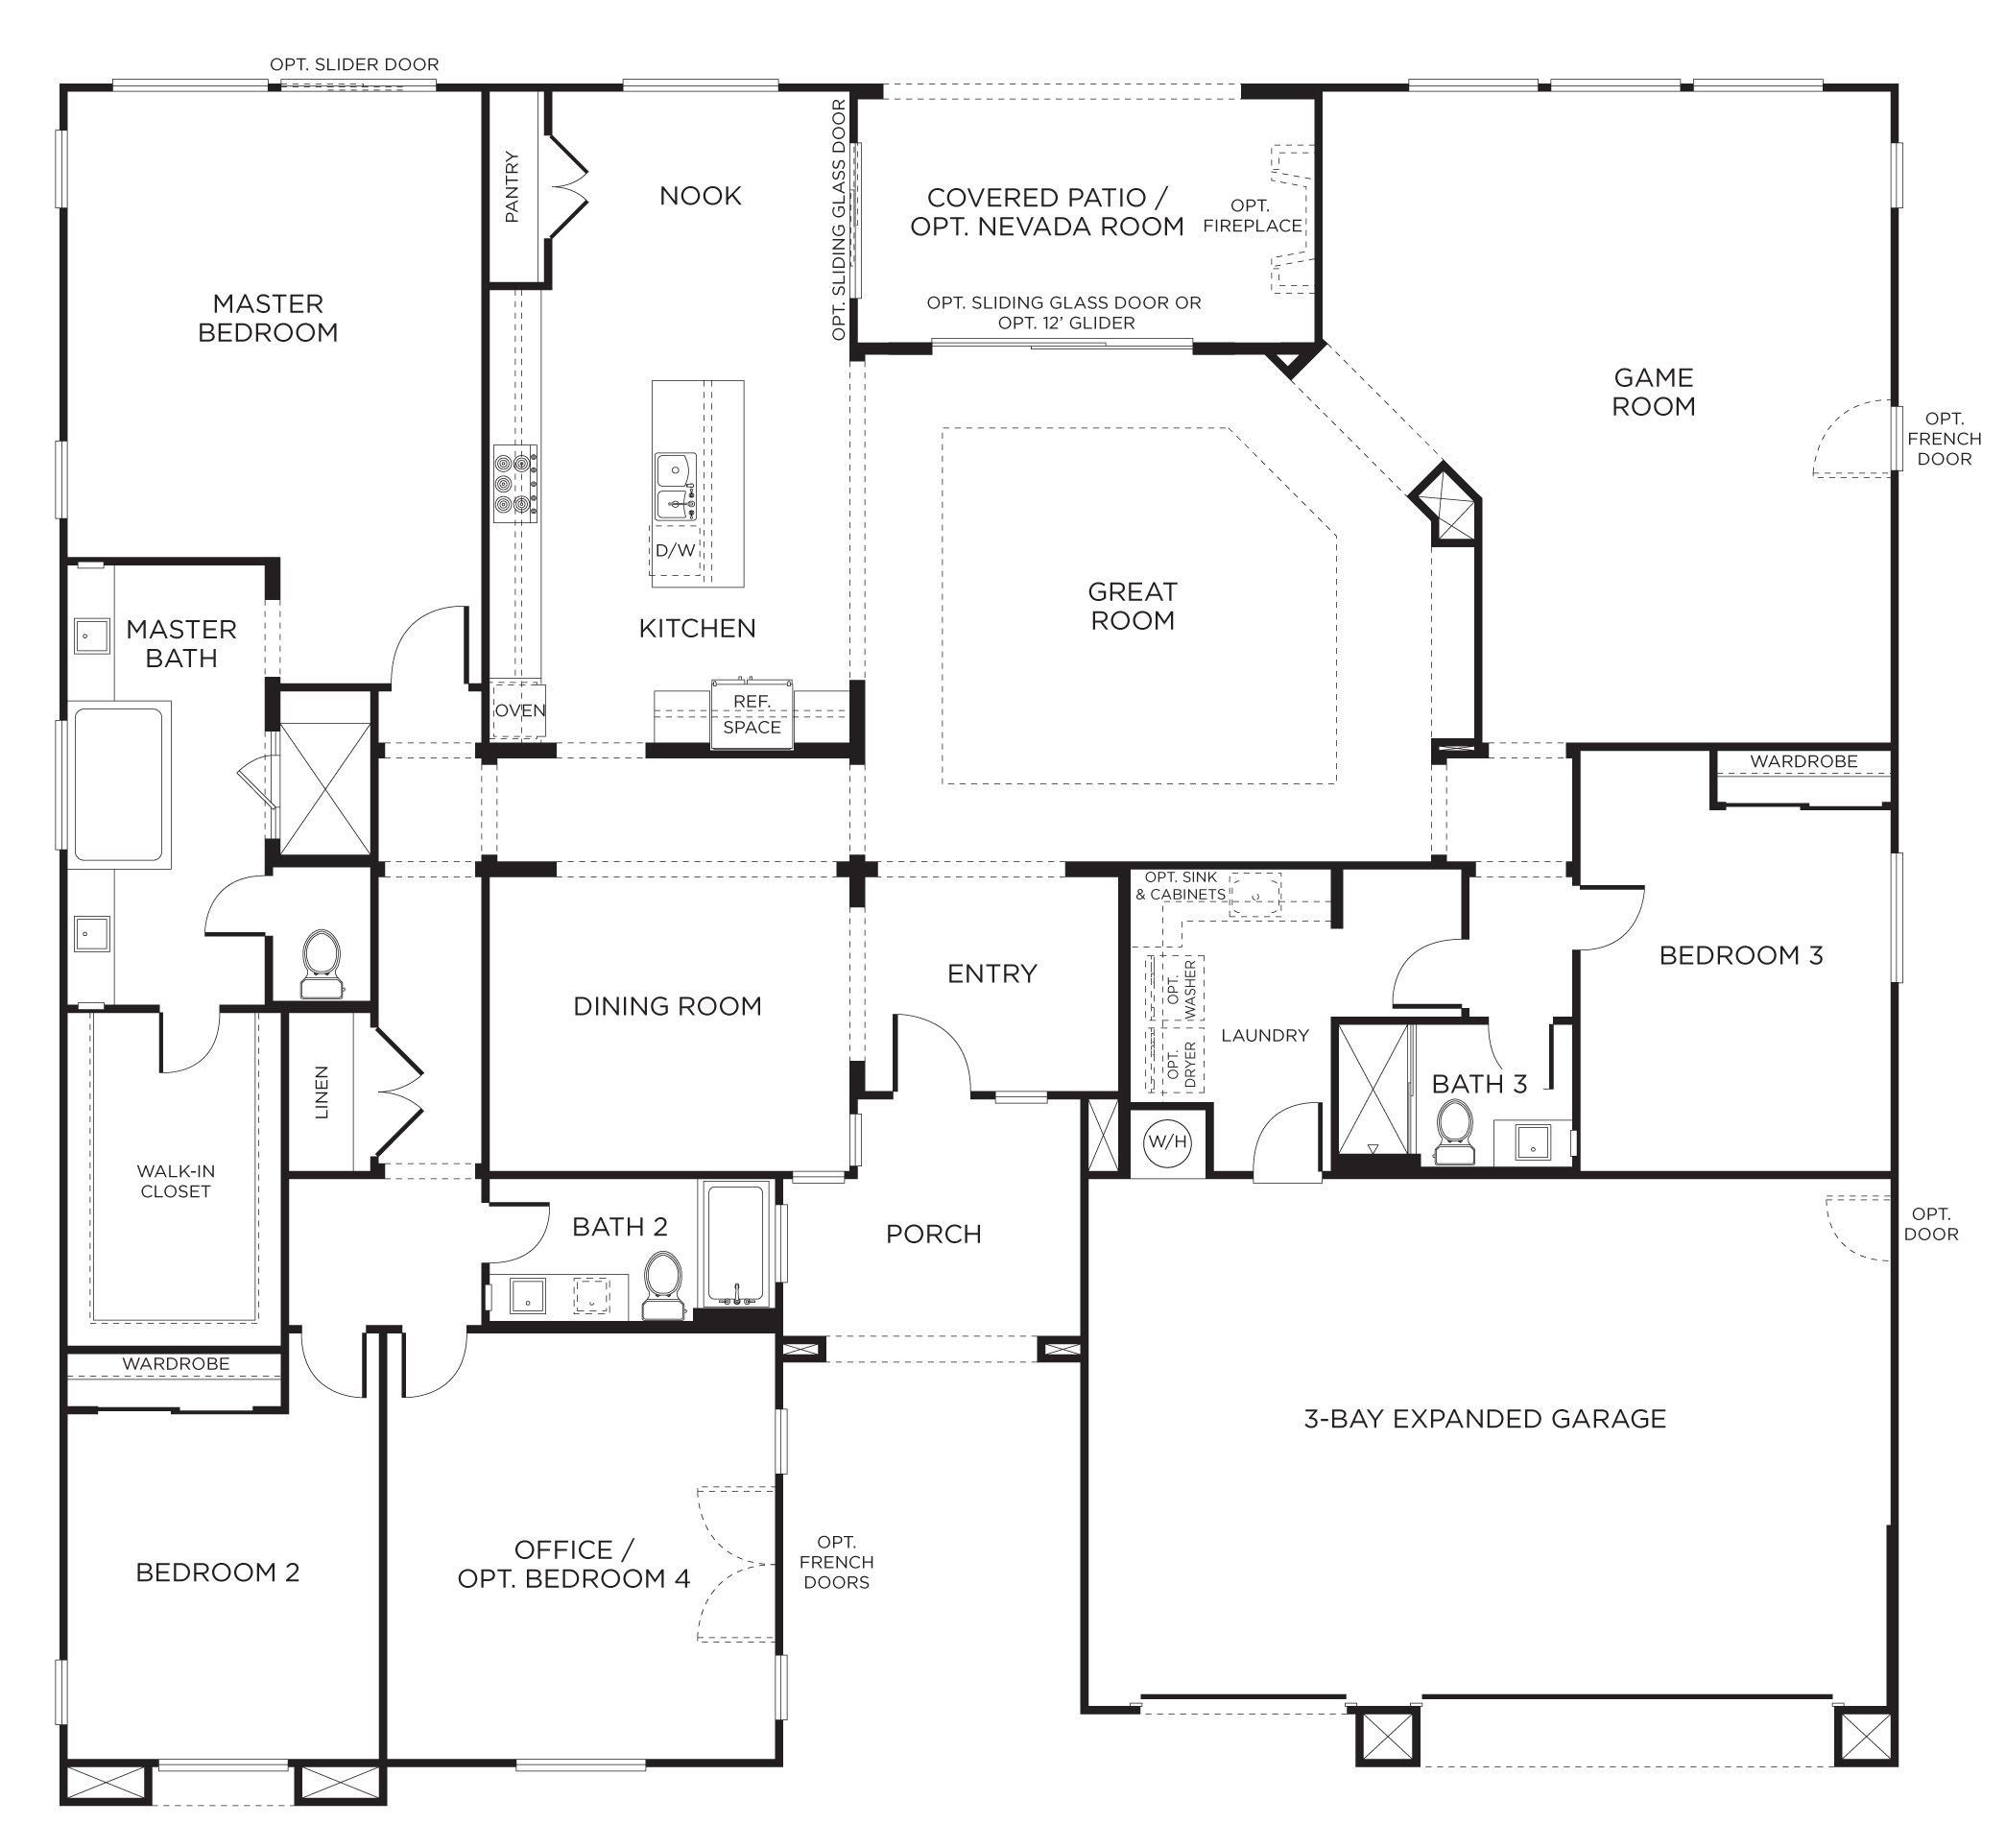 Floorplan 2 3 4 bedrooms 3 bathrooms 3400 square feet for One story house blueprints